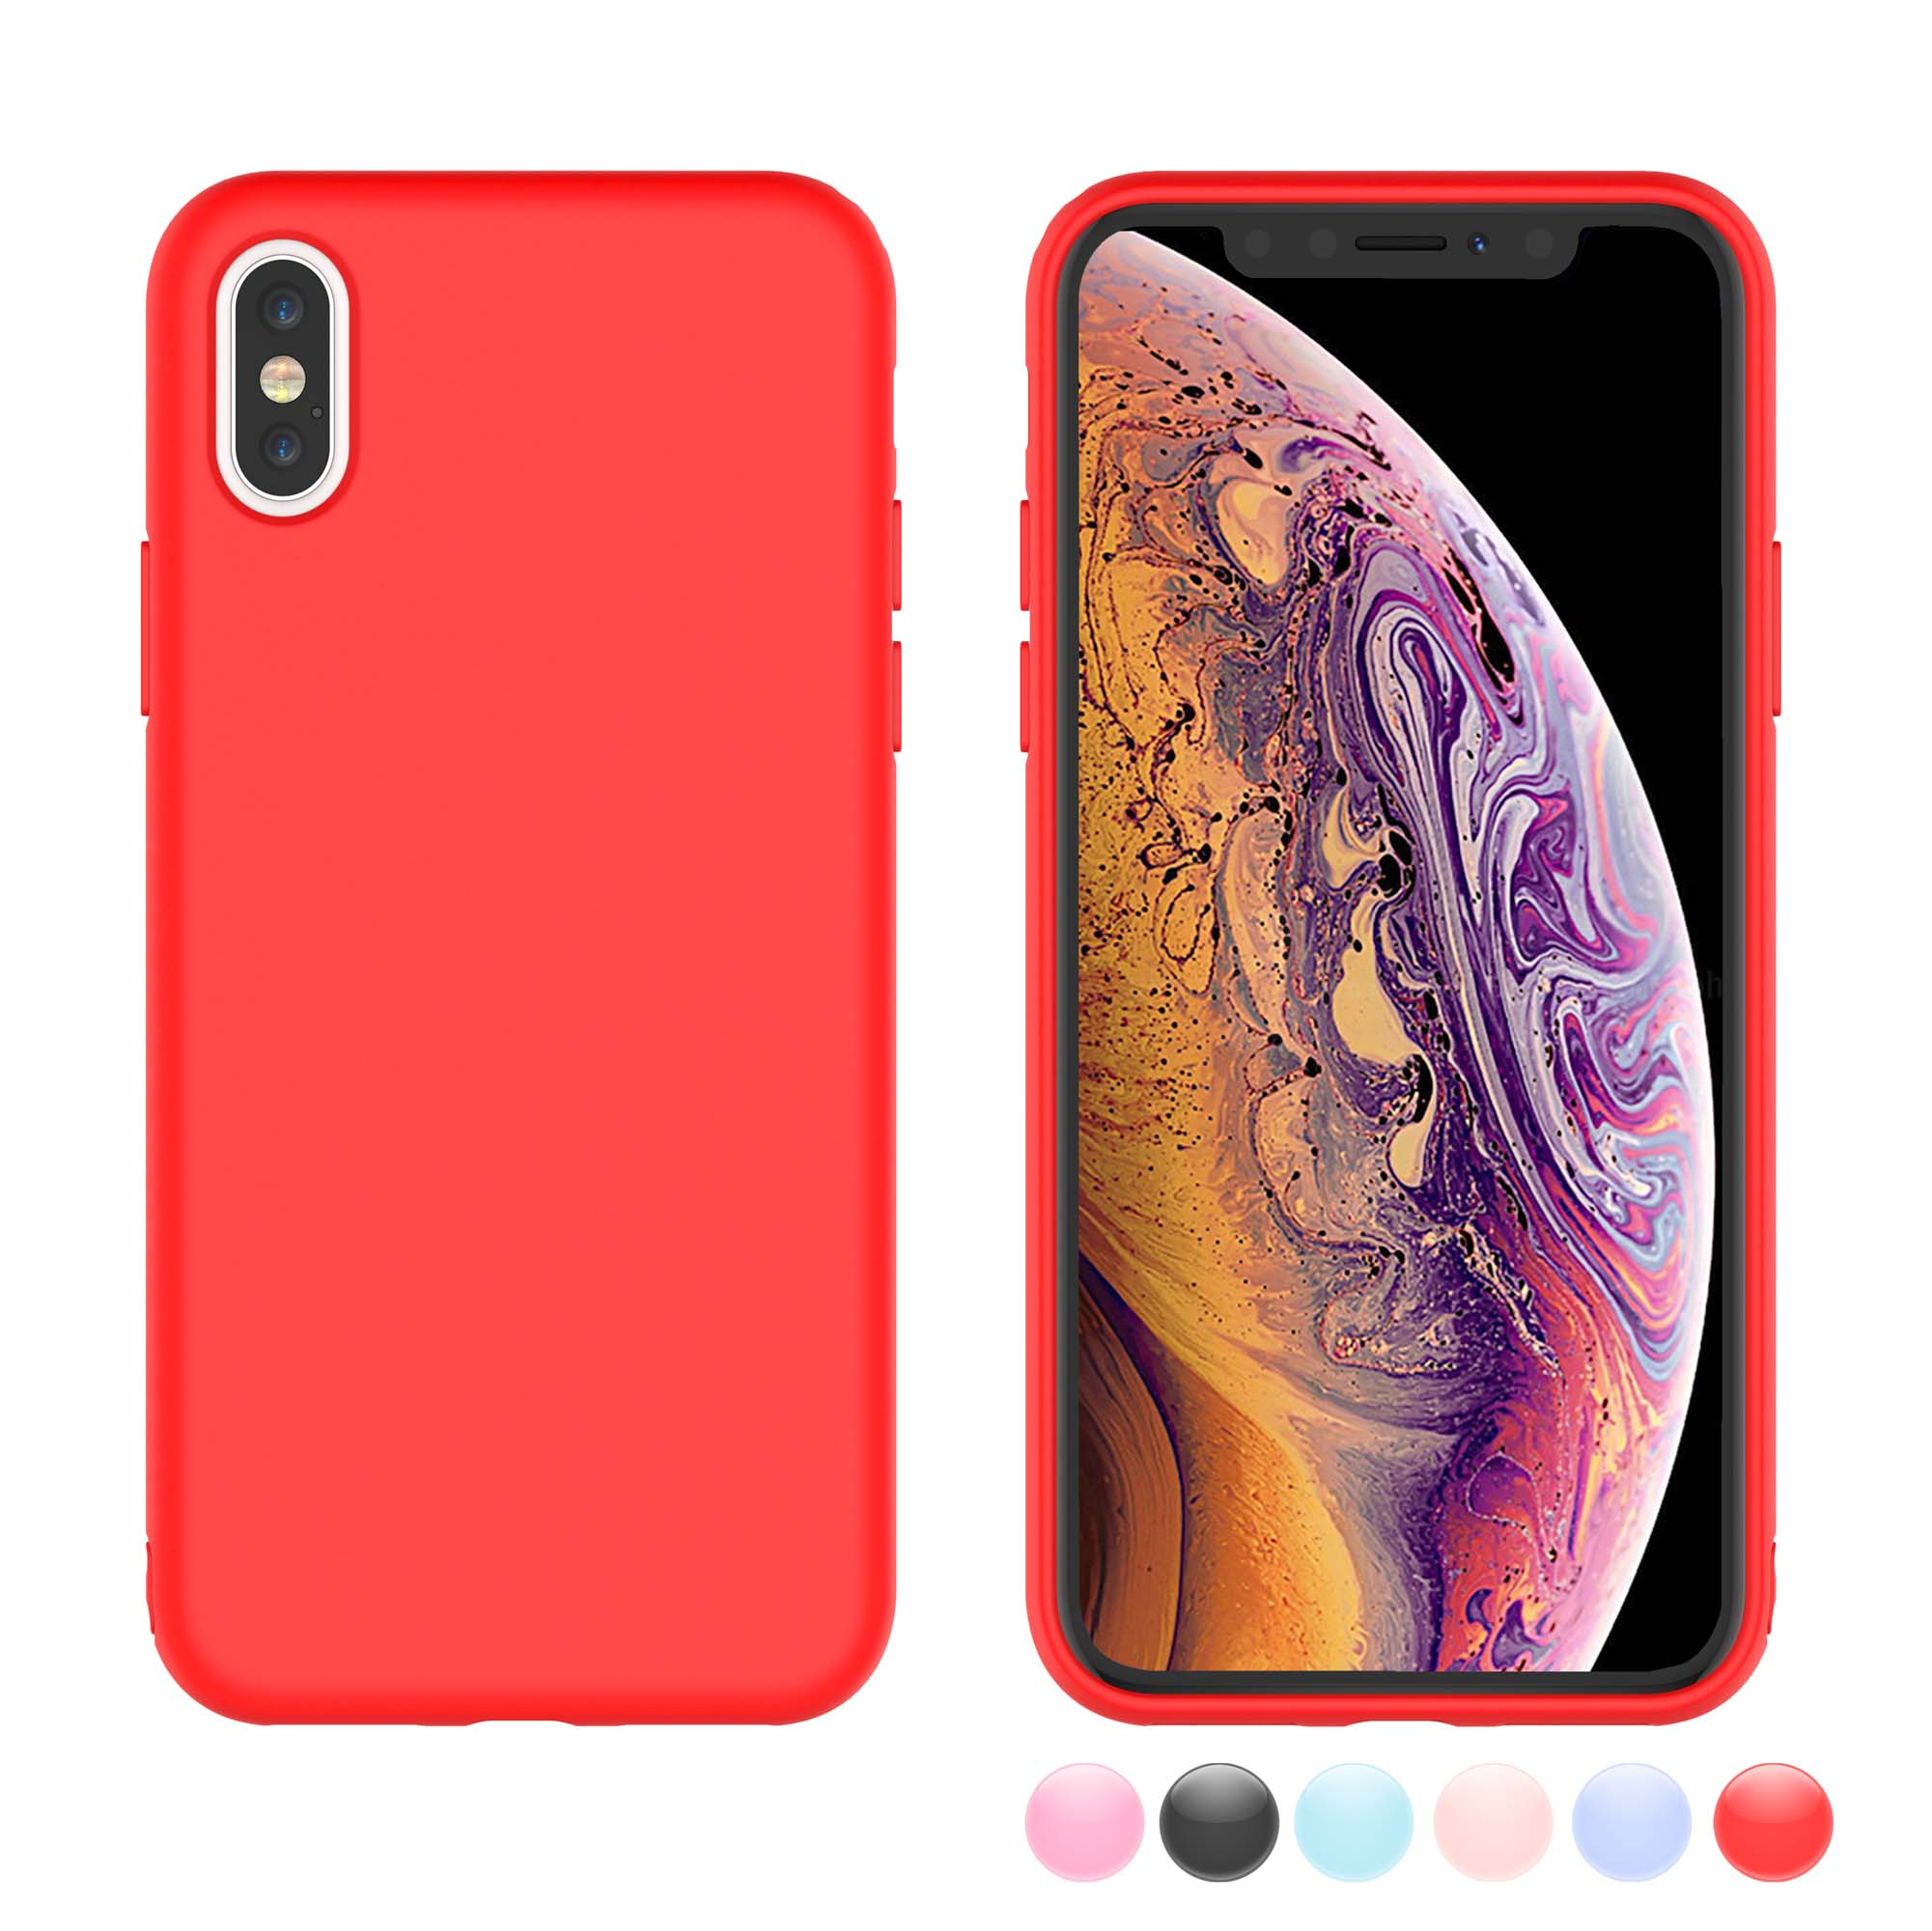 info for aeb4b 74dfb Njjex Case Cover for Apple iPhone XR / iPhone XS Max / iPhone XS / iPhone X  / iPhone 10 / iPhone X Edition, Njjex Matte Charming Colorful Slim Soft ...